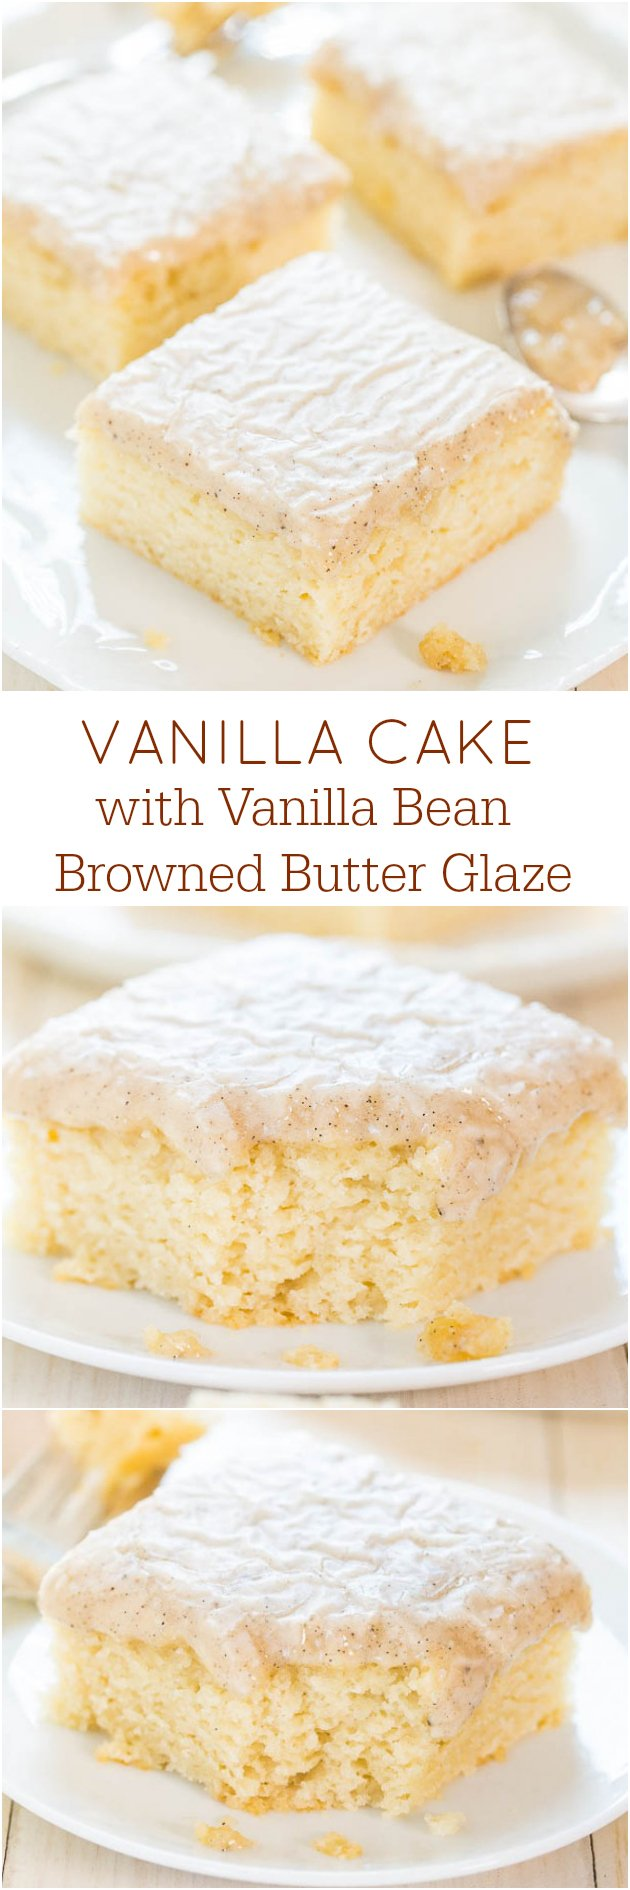 Vanilla Cake with Vanilla Bean Browned Butter Glaze - You won't miss chocolate at all after trying this cake! The glaze is just heavenly!!!